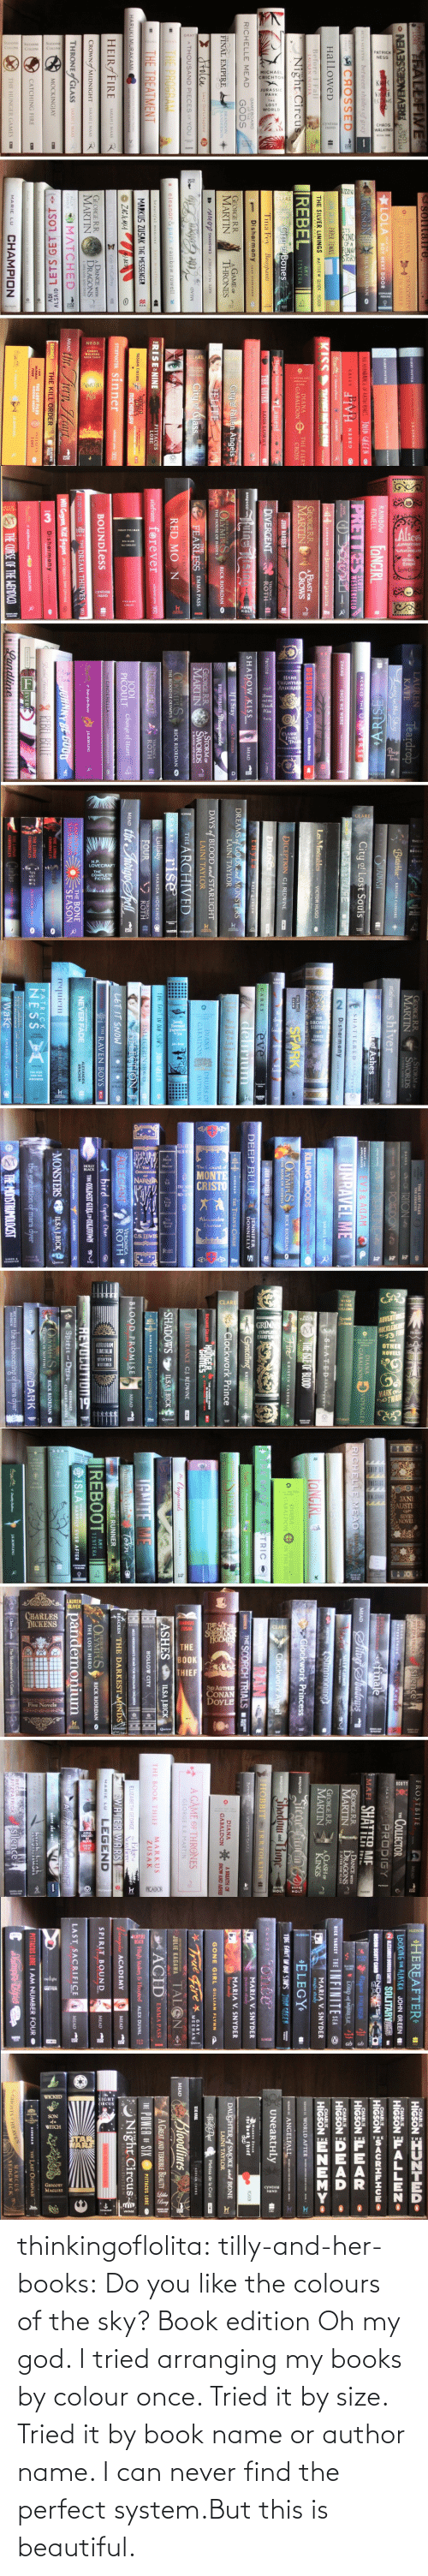 Boundless: NESS  solitaire, MAN.  PITTACUS  LORE  FALL FIVE  HARRY POTTER  de ly Helle  J.K.ROWLENG ra  DRAGONFLY  IN AMBER  DIANA  PITTACUS REVENGESSEVEN O  *LOLA OY NEXT DOOR  LORE  GABALDON  and the  J.K.ROWLING r  HARRY POTTER  RUTA SEPETYS between shades of gray  JACKSON  ERICK RIORDAN S  AN ABINDANCE OF KATHERINES JOHN GREEN @  speak  9CHOSSED  PIVH  SALLY  ALLY  CONDIE  GREEN  JK.ROWLING  HaLLoweD  JOHN GREEN PAPER TOWNS  KISS  TAPNICI INE WCM  THE SILVER LININGS MATTHEW QUICK MICADOR  Before I FalI  LAT .....  LAUREN OLIVER  Night Circus  REBEL  AMY  TINTERA  GARIANA  BALDON  THE FIERY  CROSS  LEIN MORGEN  City of Bones  Maggie Stiefvater Lanient  Tina Fey Bossypants  THE GIVER LOIS LOWRY  GAMEBOARD  OF THE  Disharmony  GIN OF NIGATIVLANE  LEAH GIARATANO  RICHELLE MEAD  GODS  GEORGE RR.  MARTIN  GAME oF  THRONES  City of Fallen Angels  FINAL EMPIRE  BRANDON  SANDERSON  ELITE  Jtolen  Lucy Christopher  KATE M.CAFFREY CRASHING Aown a  City of Glass  A THOUSAND PIECES OF YOU  MEAD  the Golorn Lity  O FRACTURED  THE PROGRAM  THE TREATMENT  eleanor& park rainbow rowell  ERISE NINE  PITTACUS  LORE  beautiful monster kate mcaffrey  MARKUS ZUSAK THE MESSENGER  SUZANME COLLINS a HUNGER  MOCHINGJAY  THE Ien dn  HARUKI MURAKAMI  ZAC& MIA  J-BETTS  HEIR FIRE  STIEFVATER Sinner  scholatie pres ID  SARAH I. MAAS  m cestasy Kate McCaffrey  DANCE WITH  DRAGONS  GEORGE RR.  CROWN of MIDNIGHT SARAH J. MAAS  MARTIN  I:DREAMS AND DUST  THRONEfGLASS  AlLr MATCHED  thr Tiery. Hurt  SARAH I. MAAS  CONDIE  MEAD  WineswovEL  MOCKINGJAY  ALSAID  DASHNER  THE KILL ORDER  DELACORTE  PRESS  ADI LETS GET LOST  IAM  THE LOST FILES  HIDDEN ENEMY  NUMBER  PITTACUS  CATCHING FIRE  FOUR  LORE  CHAMPION  THE HUNGER GAMES a  MARIE LU  JKROWLING   LAUREN  KATE  Teardrop  1143-A1  Luey inthe  Bitterblue  KRISTIN CASHORE  RAINBOW  ROWELL  FANGIRL  STEADFAST  ARISE  City of Lost Souls  ACROSS THE UNIVERSE  PRETTRES WESTERFELD  SCOTT  lsli THE DEAYEARE  HADIE  DUTKOSKI  ZHANG  ONCE WE WERE  - 4i  TH